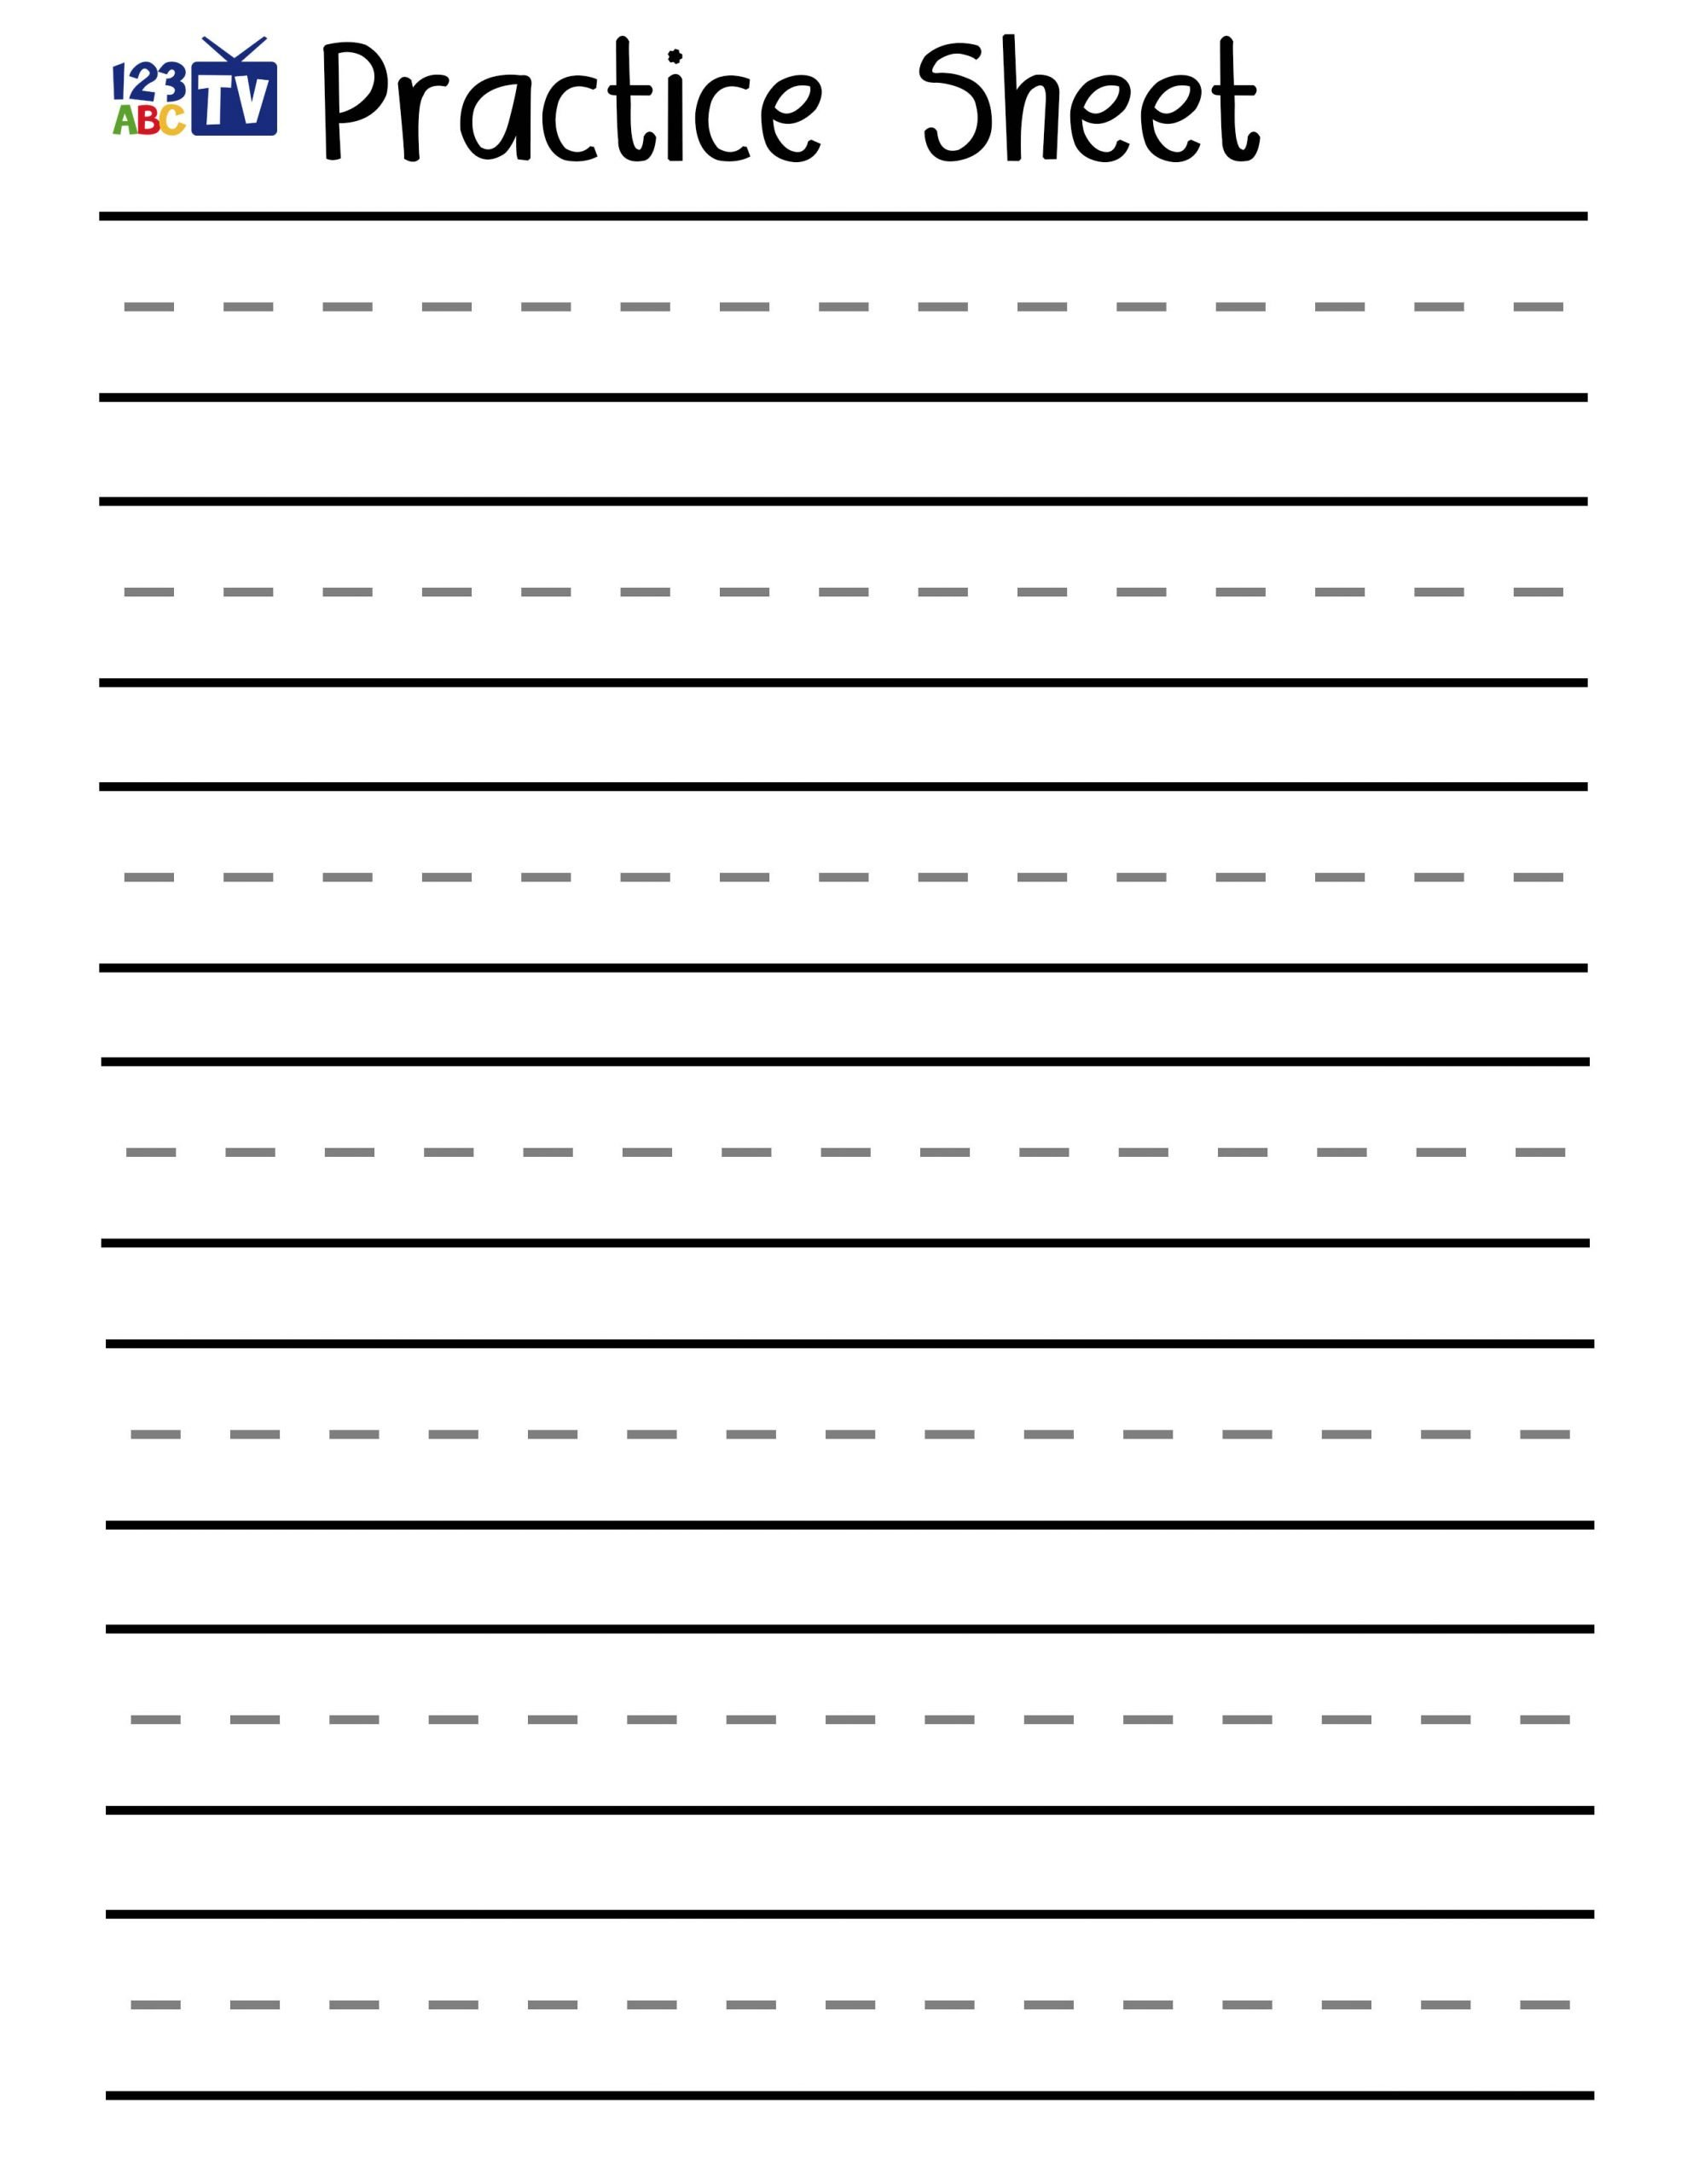 letter a practice handwriting s 123 abc tv